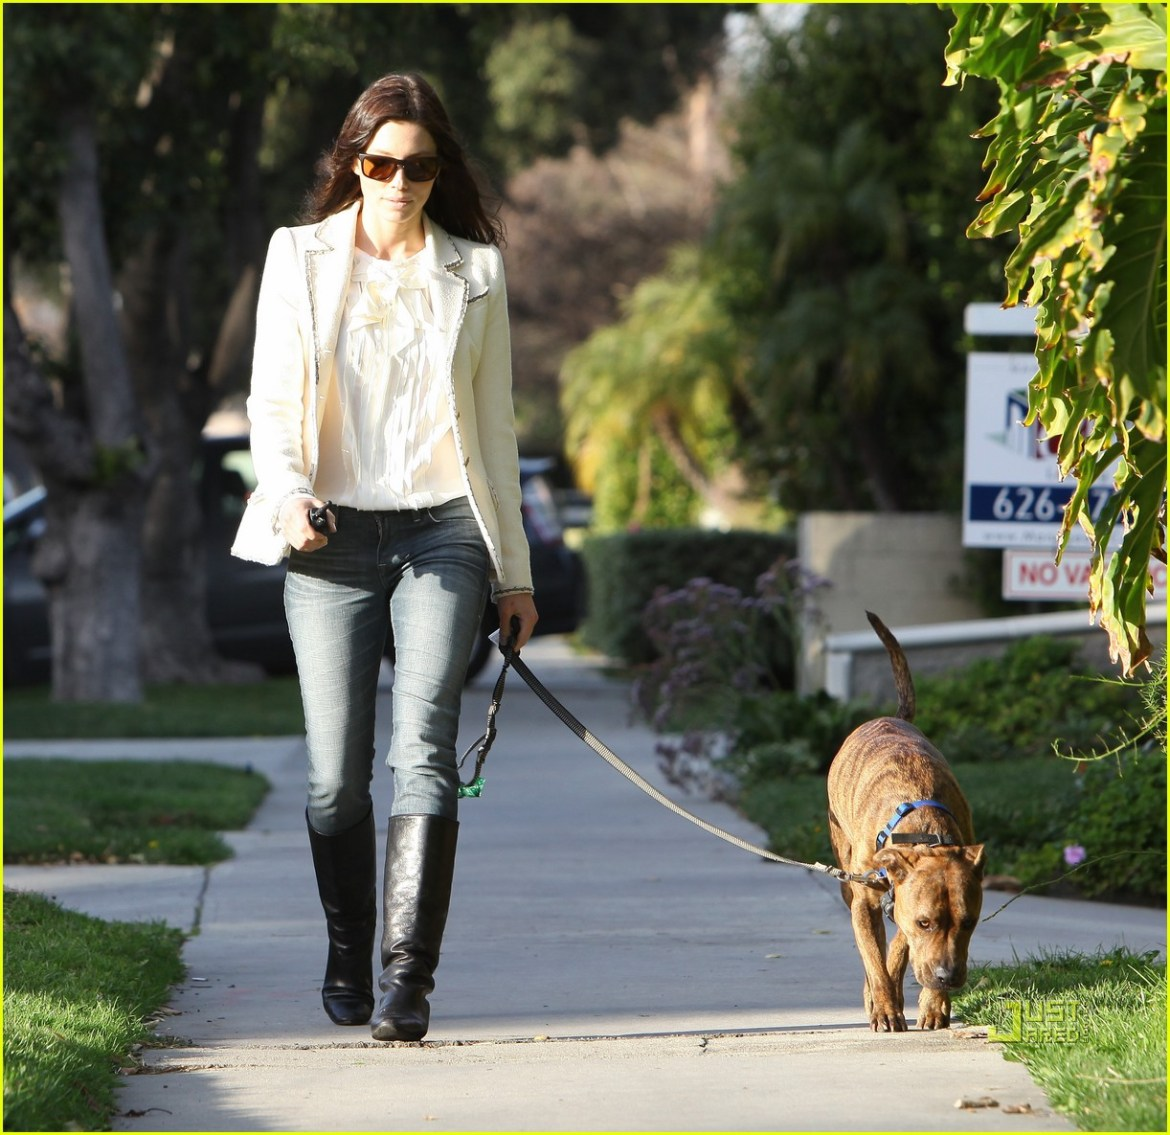 Jessica Biel takes her dog for a walk.